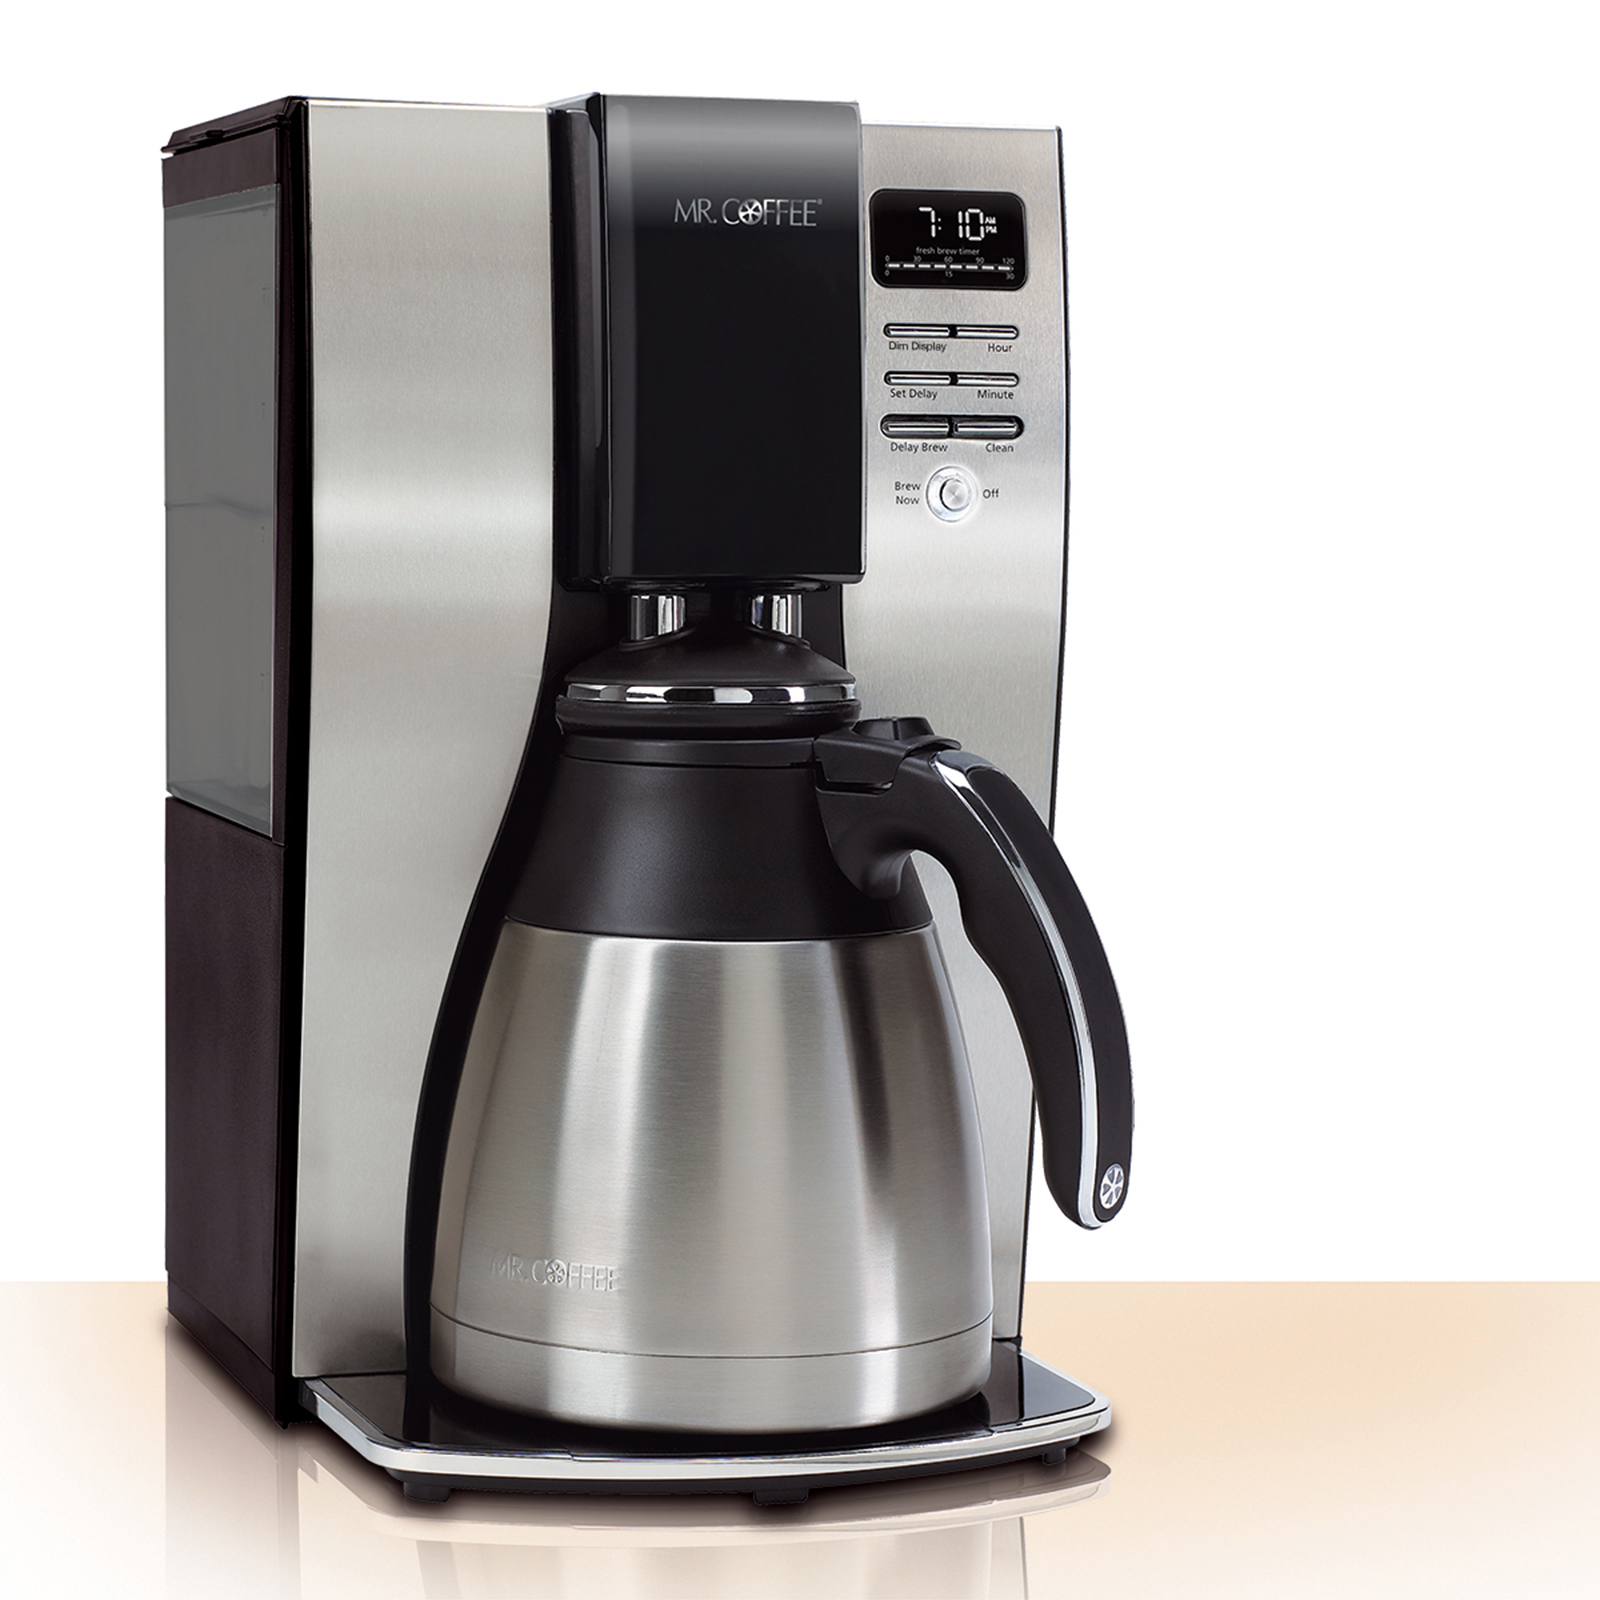 Mr. Coffee BVMC-PSTX91 10-Cup Optimal Brew Thermal Coffee Maker Shop Your Way: Online Shopping ...